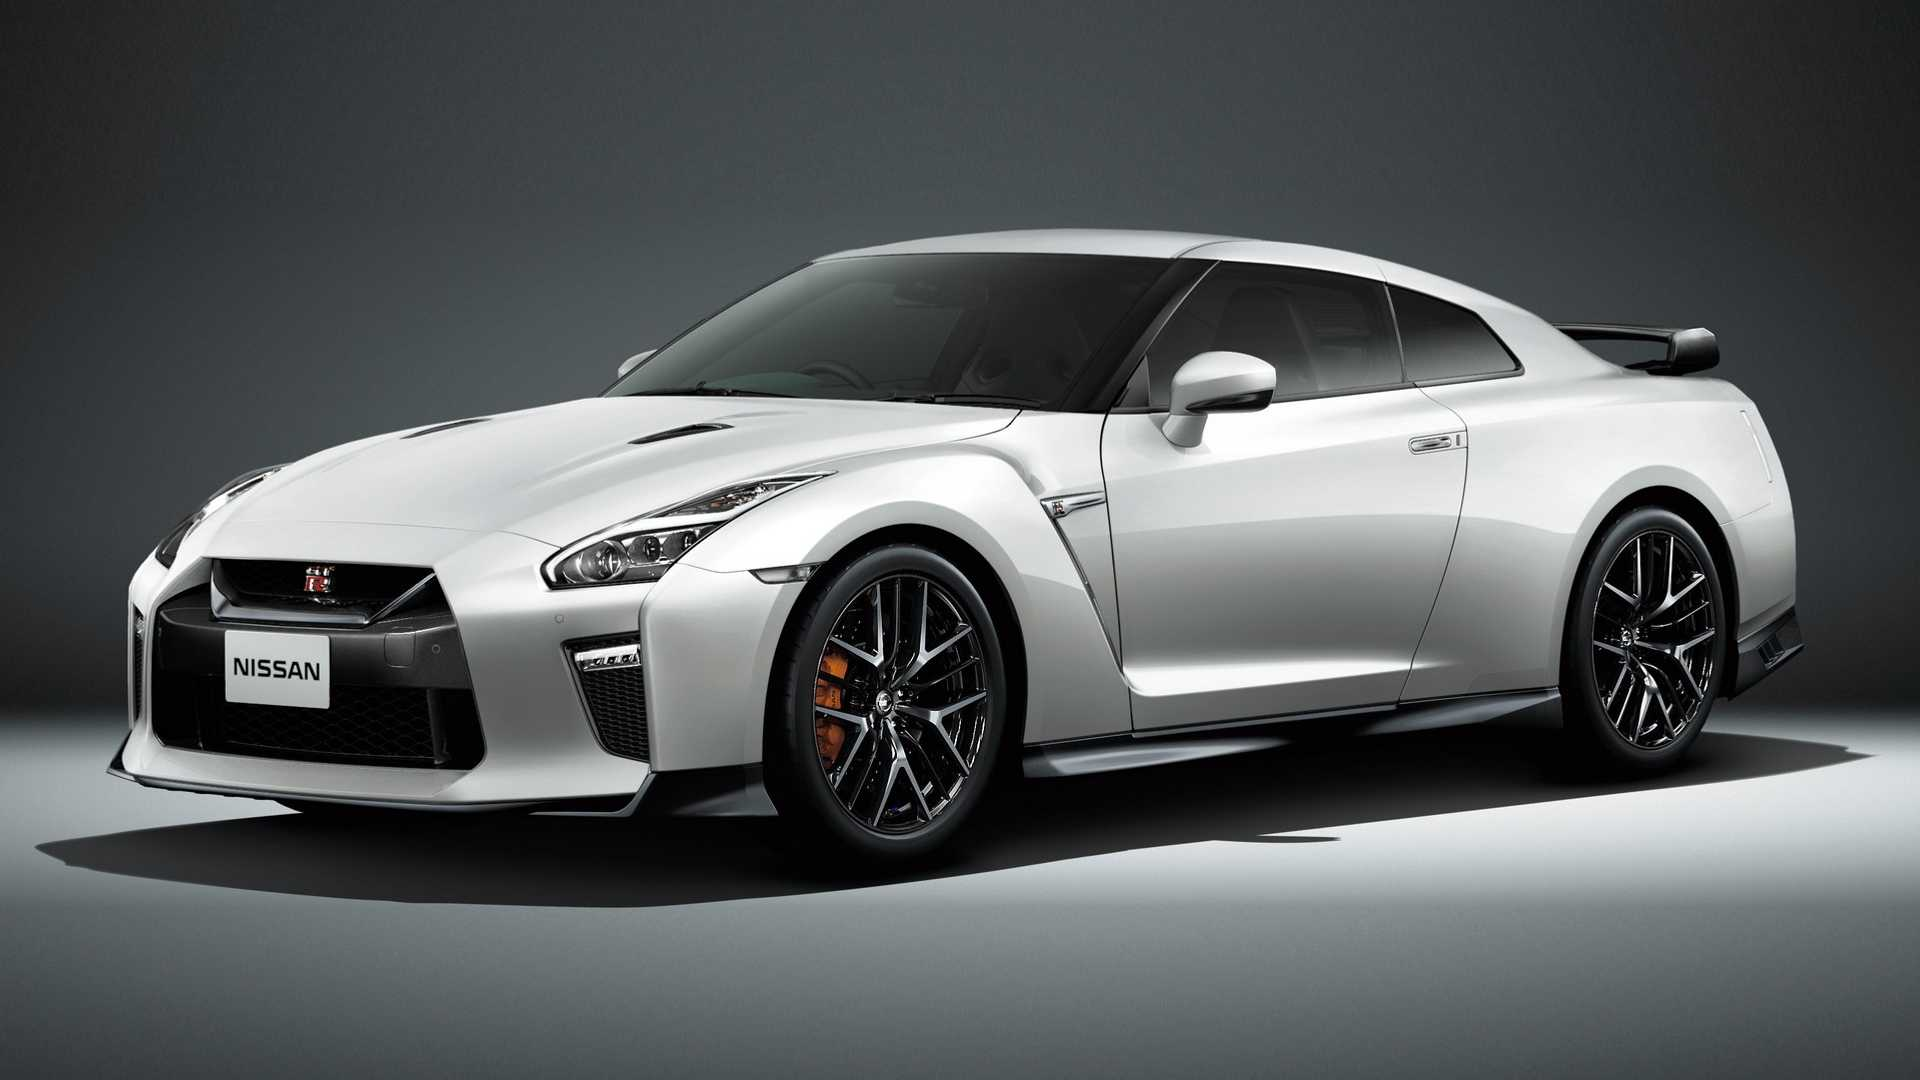 44 New Nissan 2019 Gtr Performance